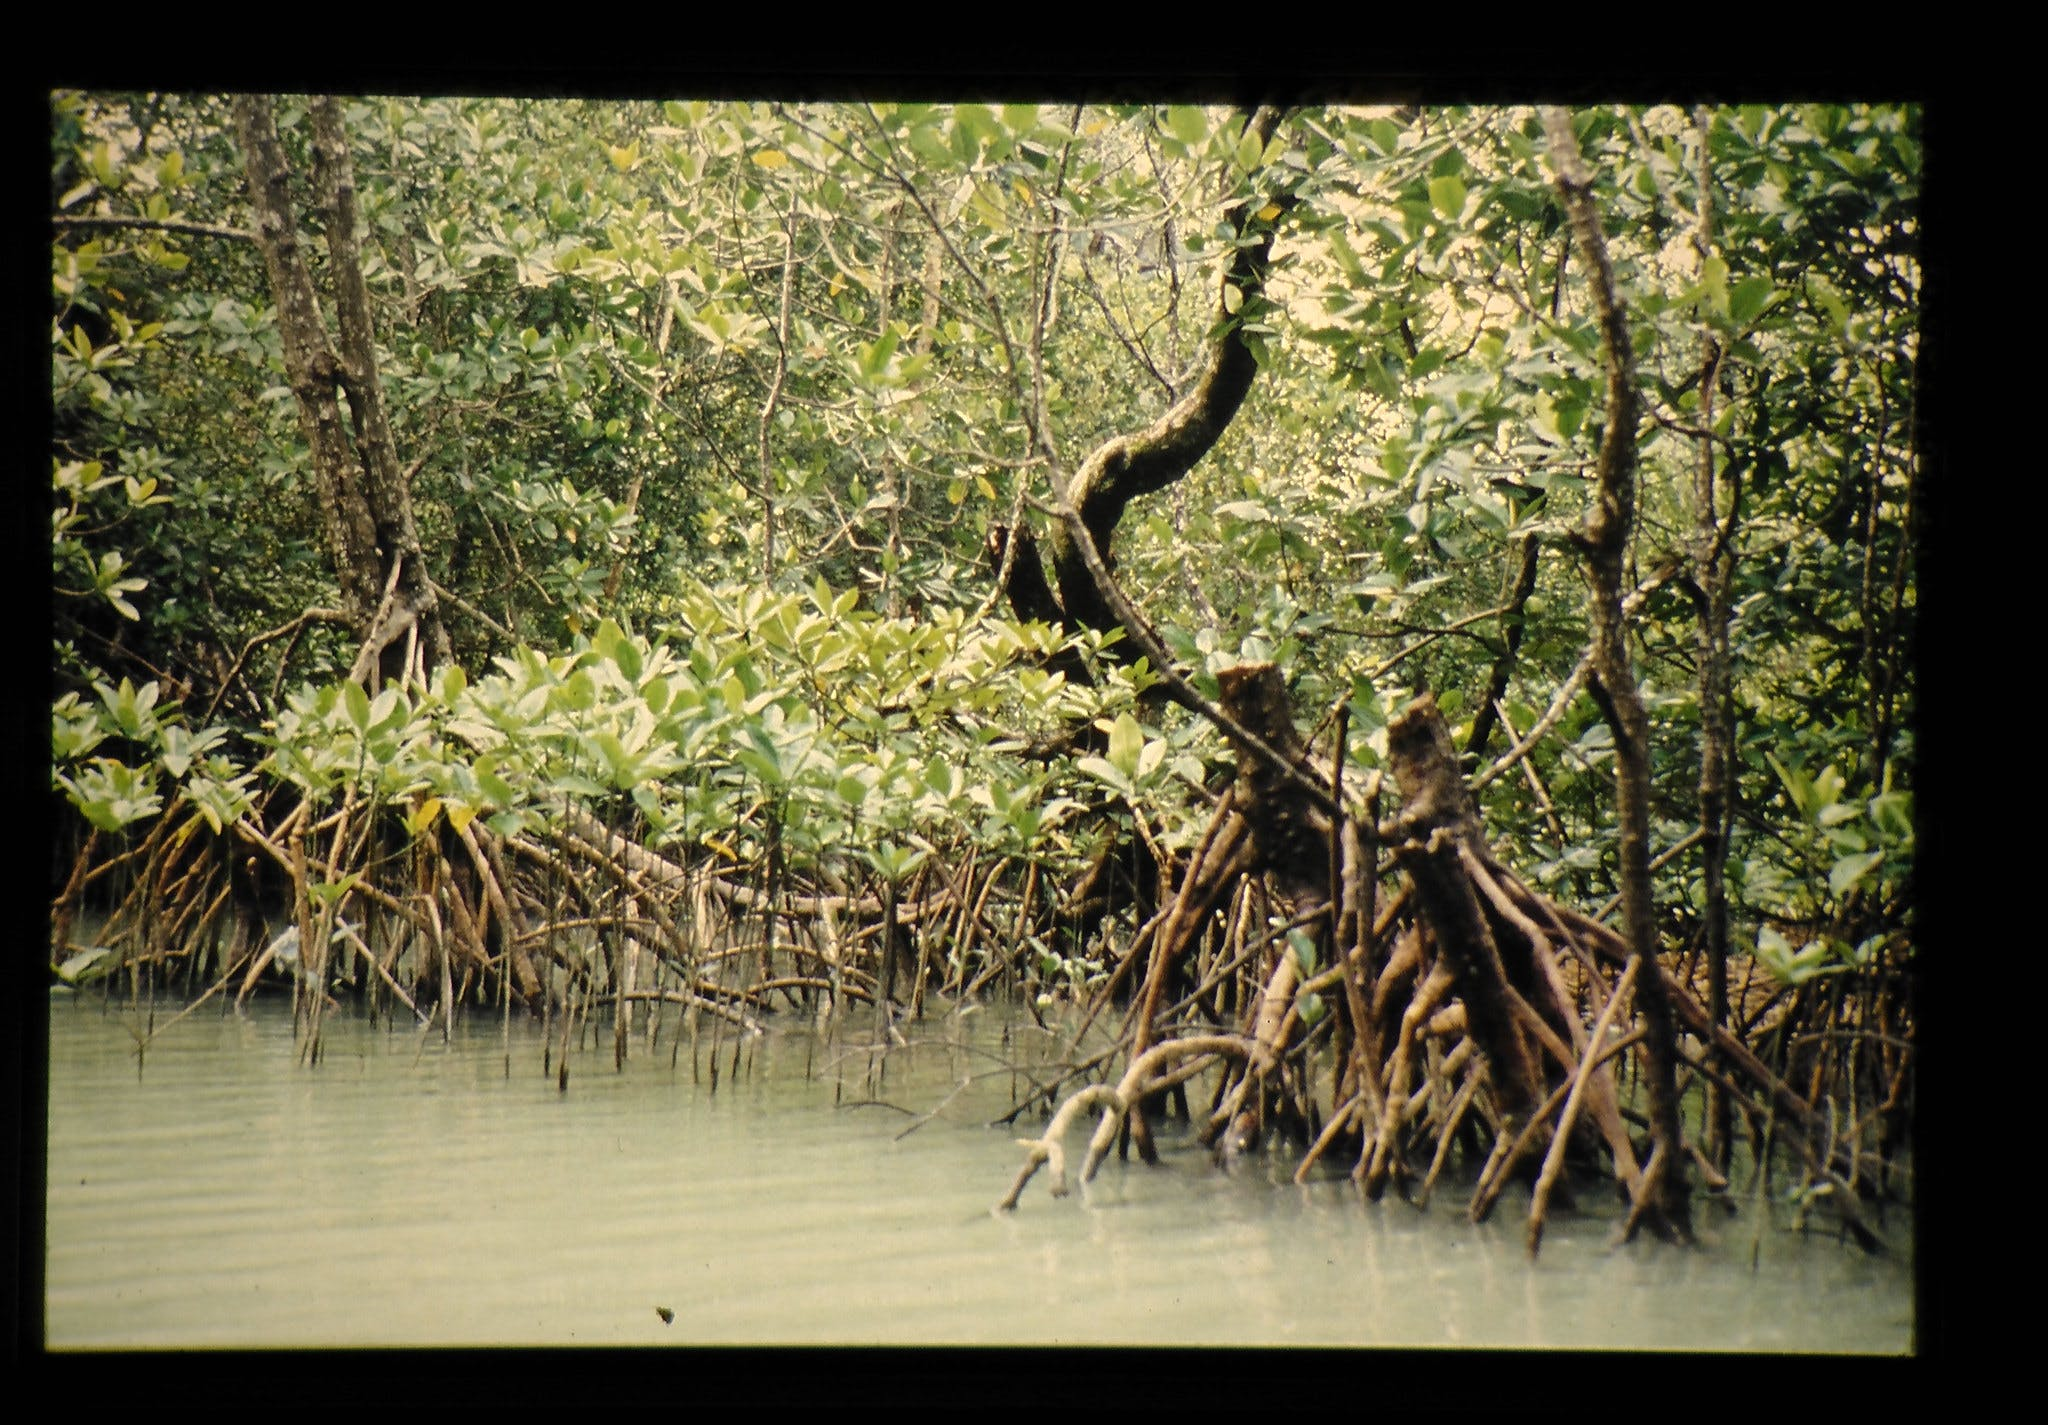 A swampy mangrove forest in Thailand, 1988.